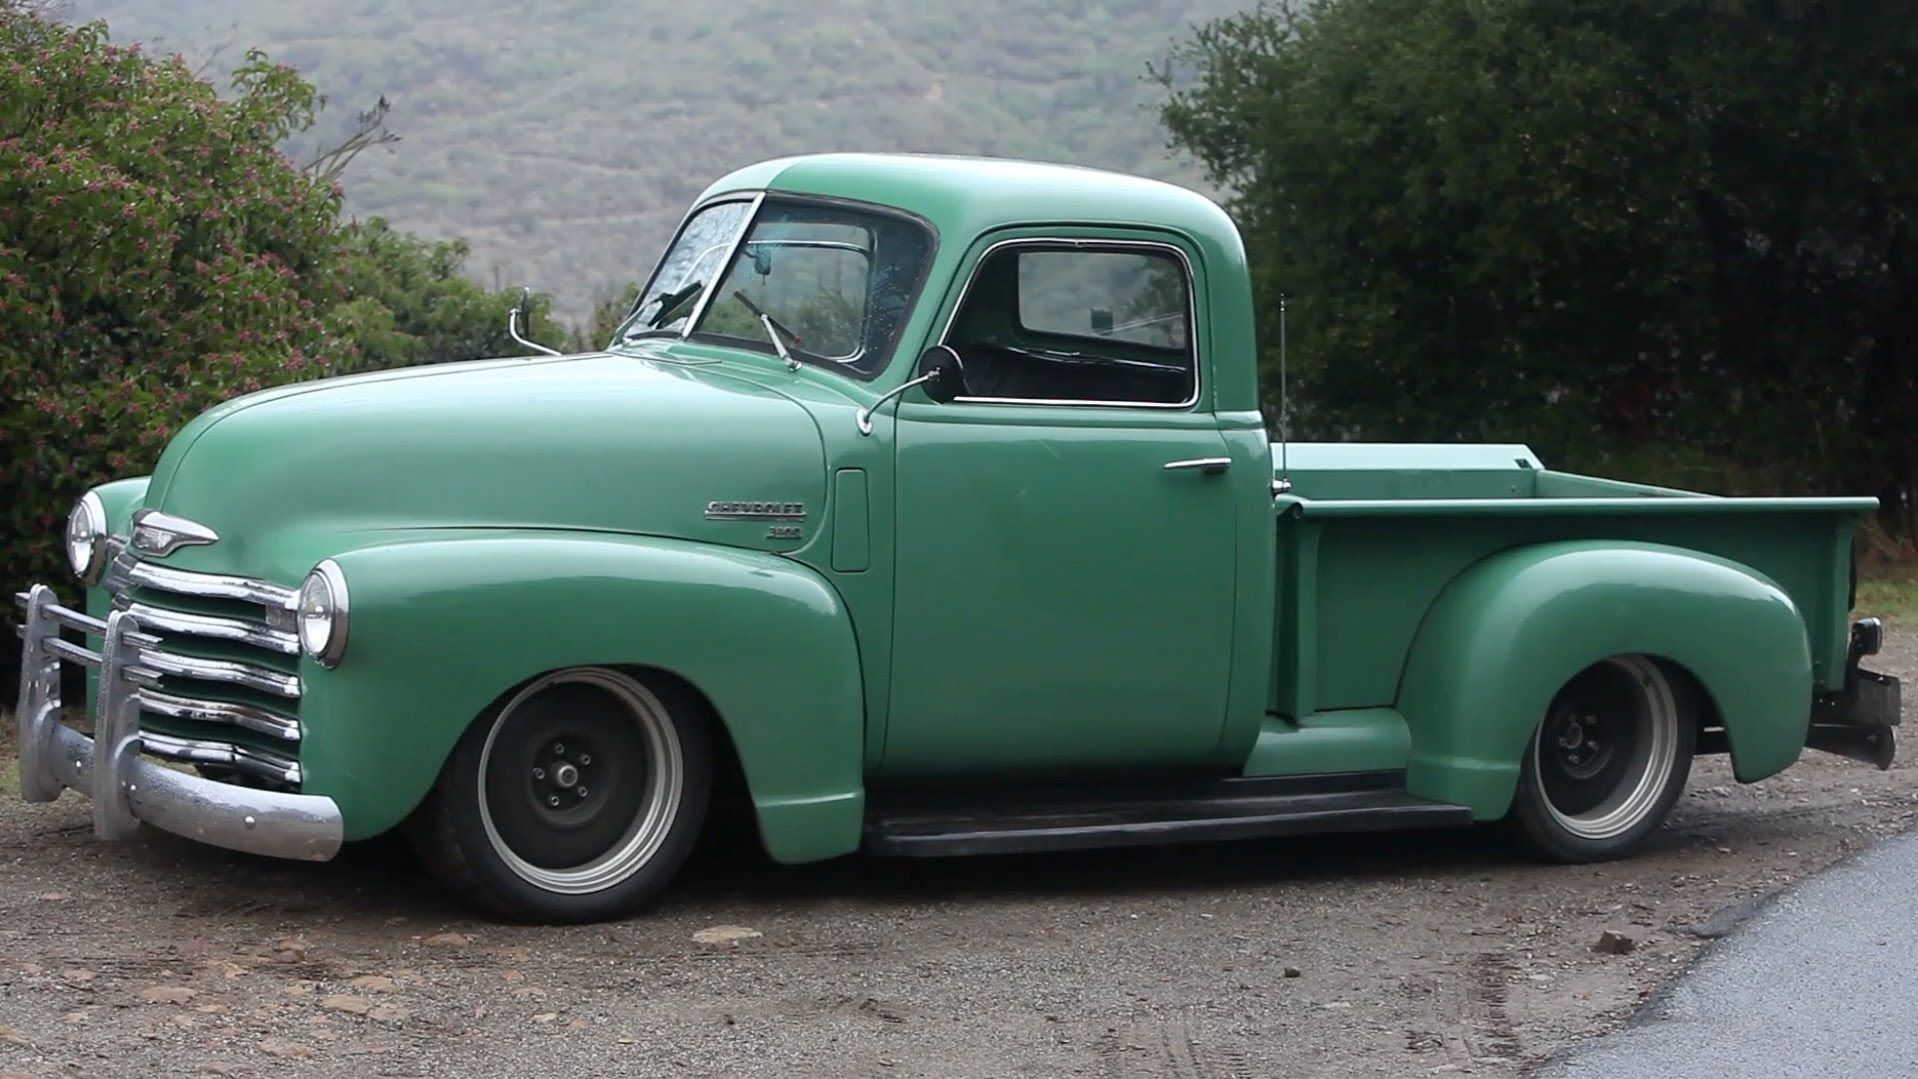 This 1950 Chevy Pickup isn't your grandpa's farm truck ...